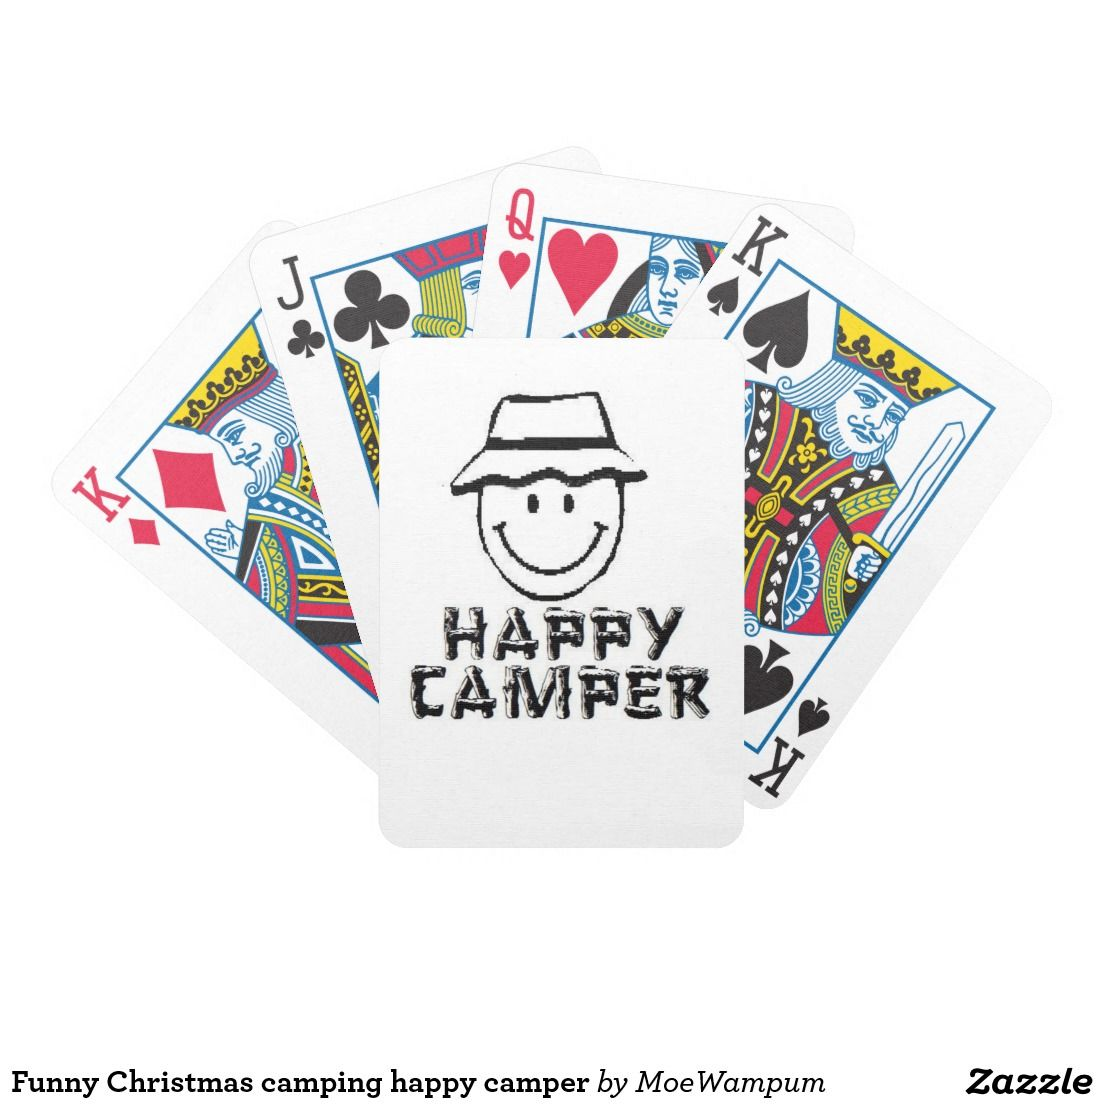 Funny Christmas camping happy camper